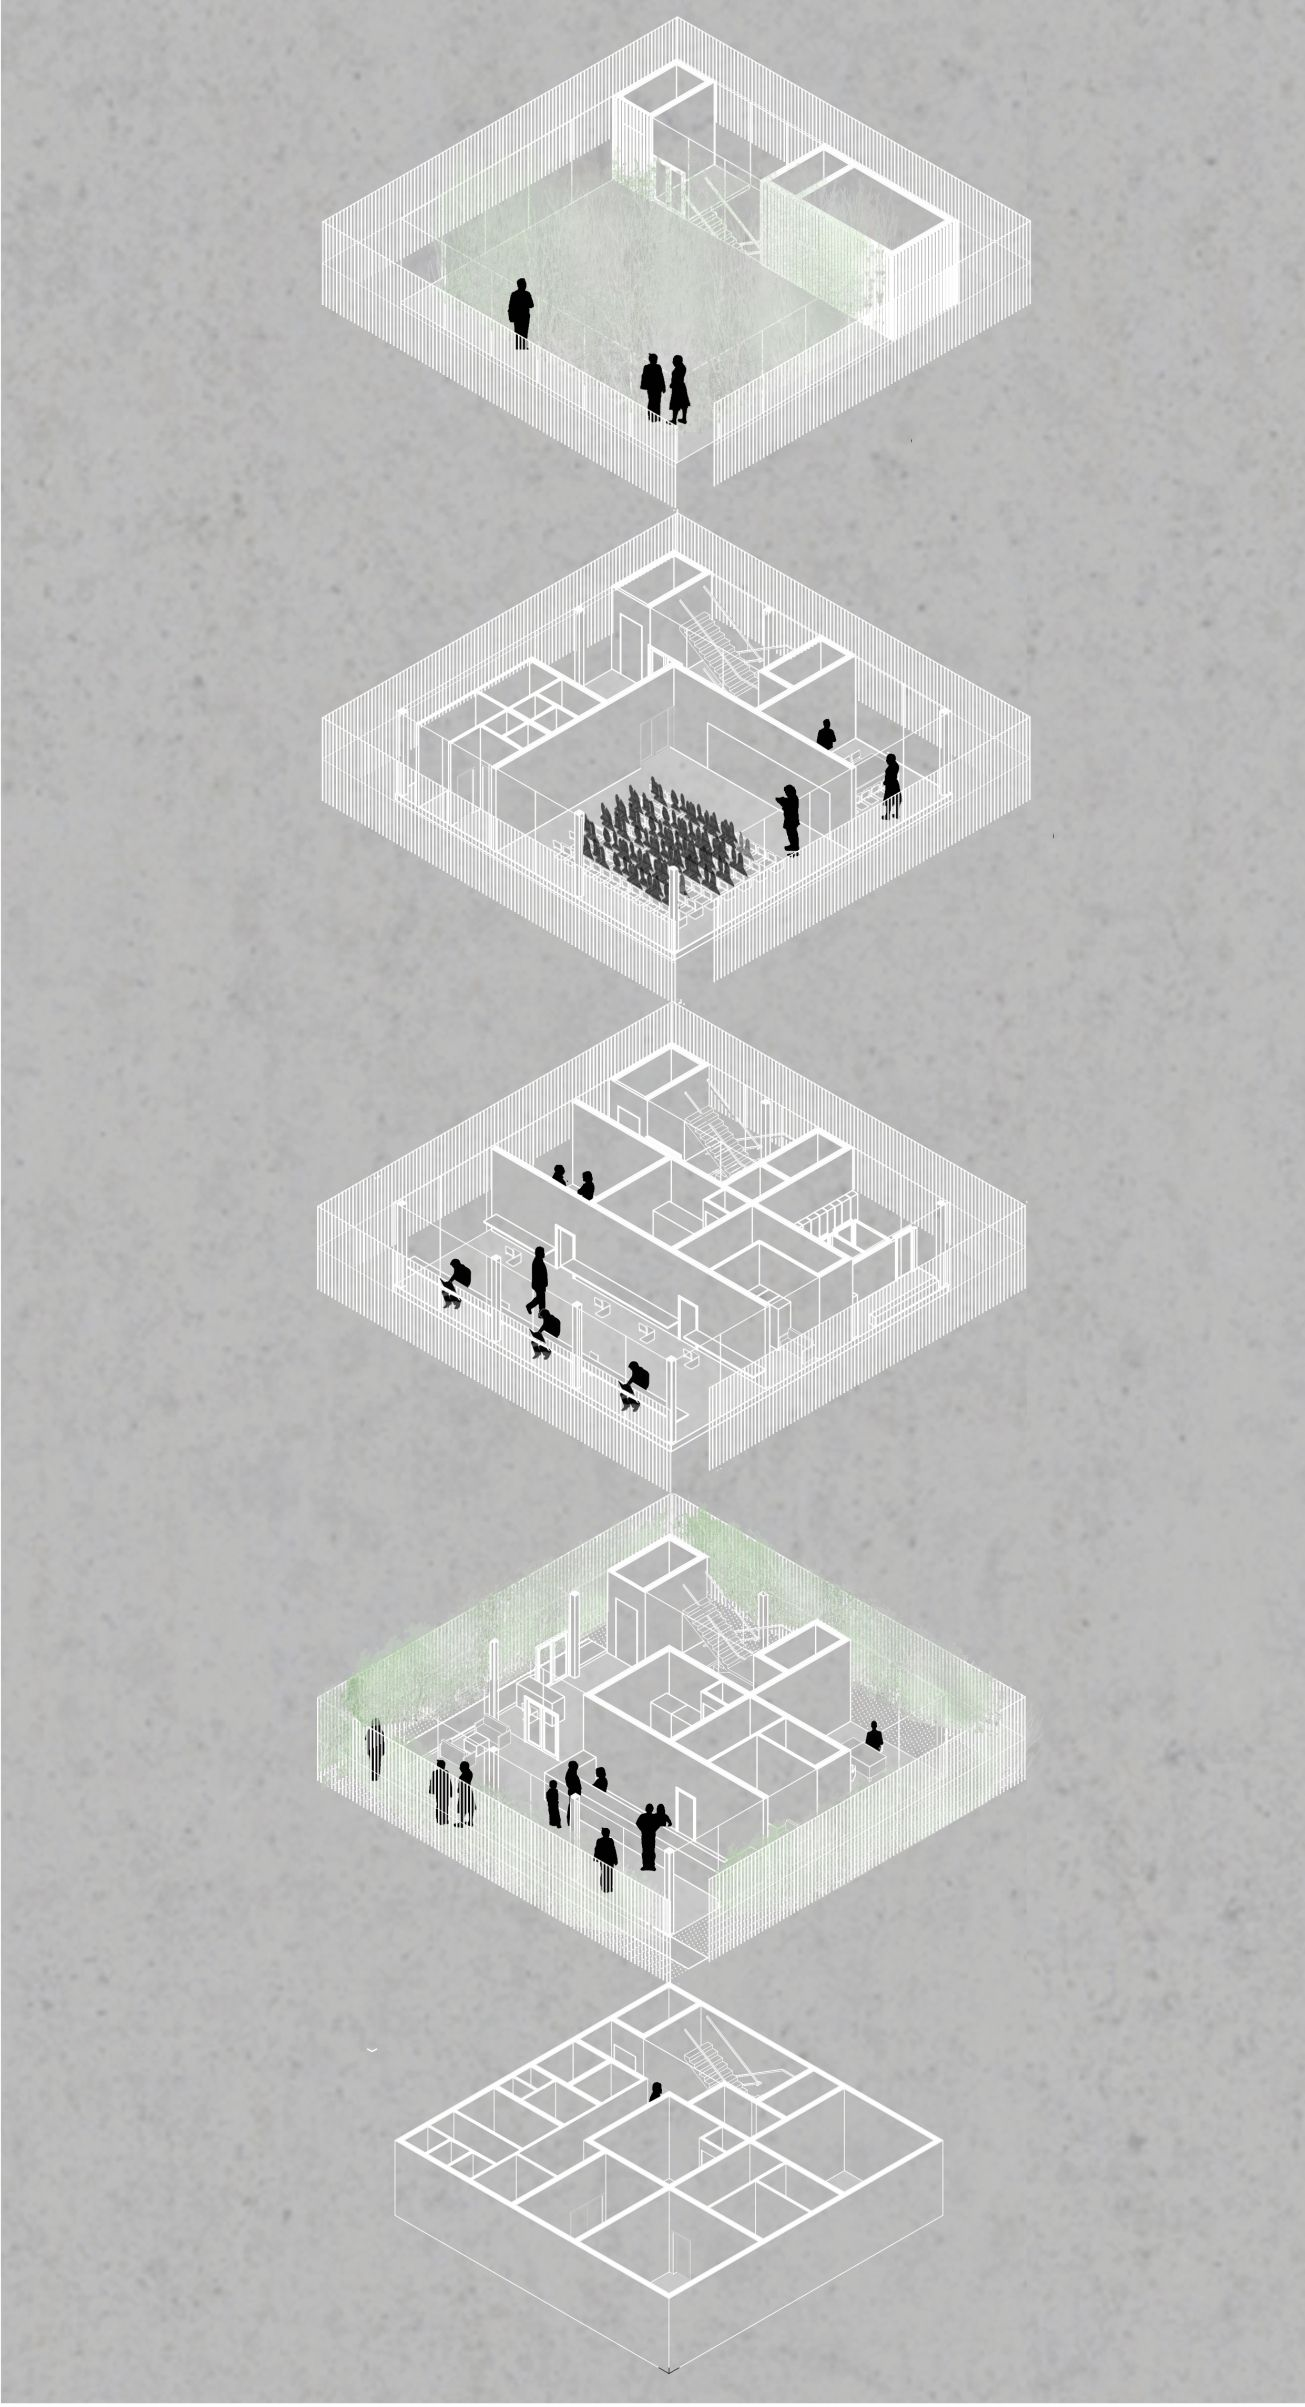 Cure In The Cube Con Imagenes Diagramas De Arquitectura